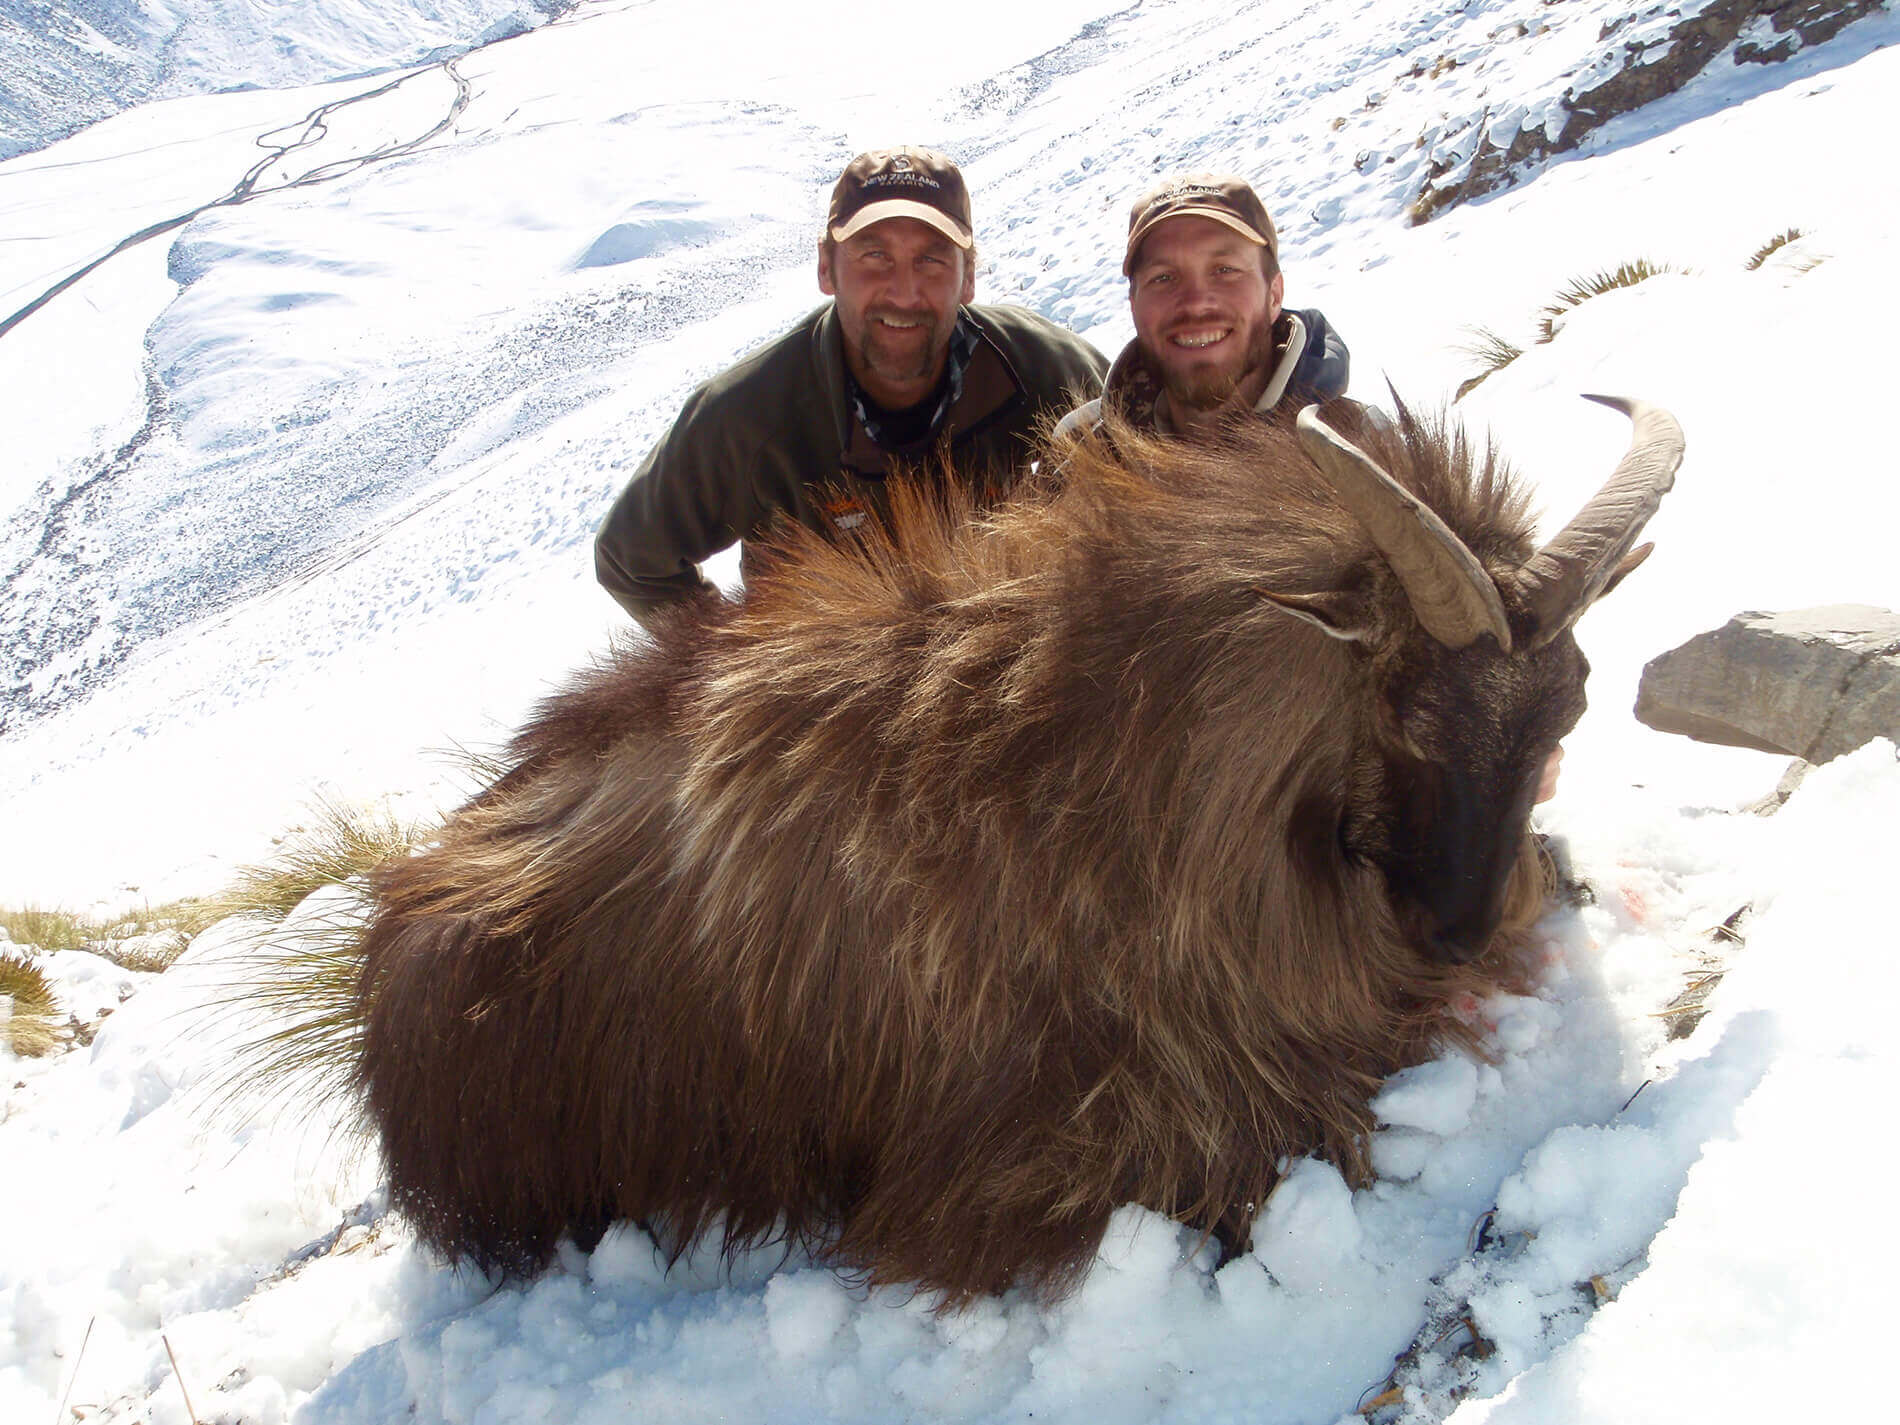 troy with tahr trophy